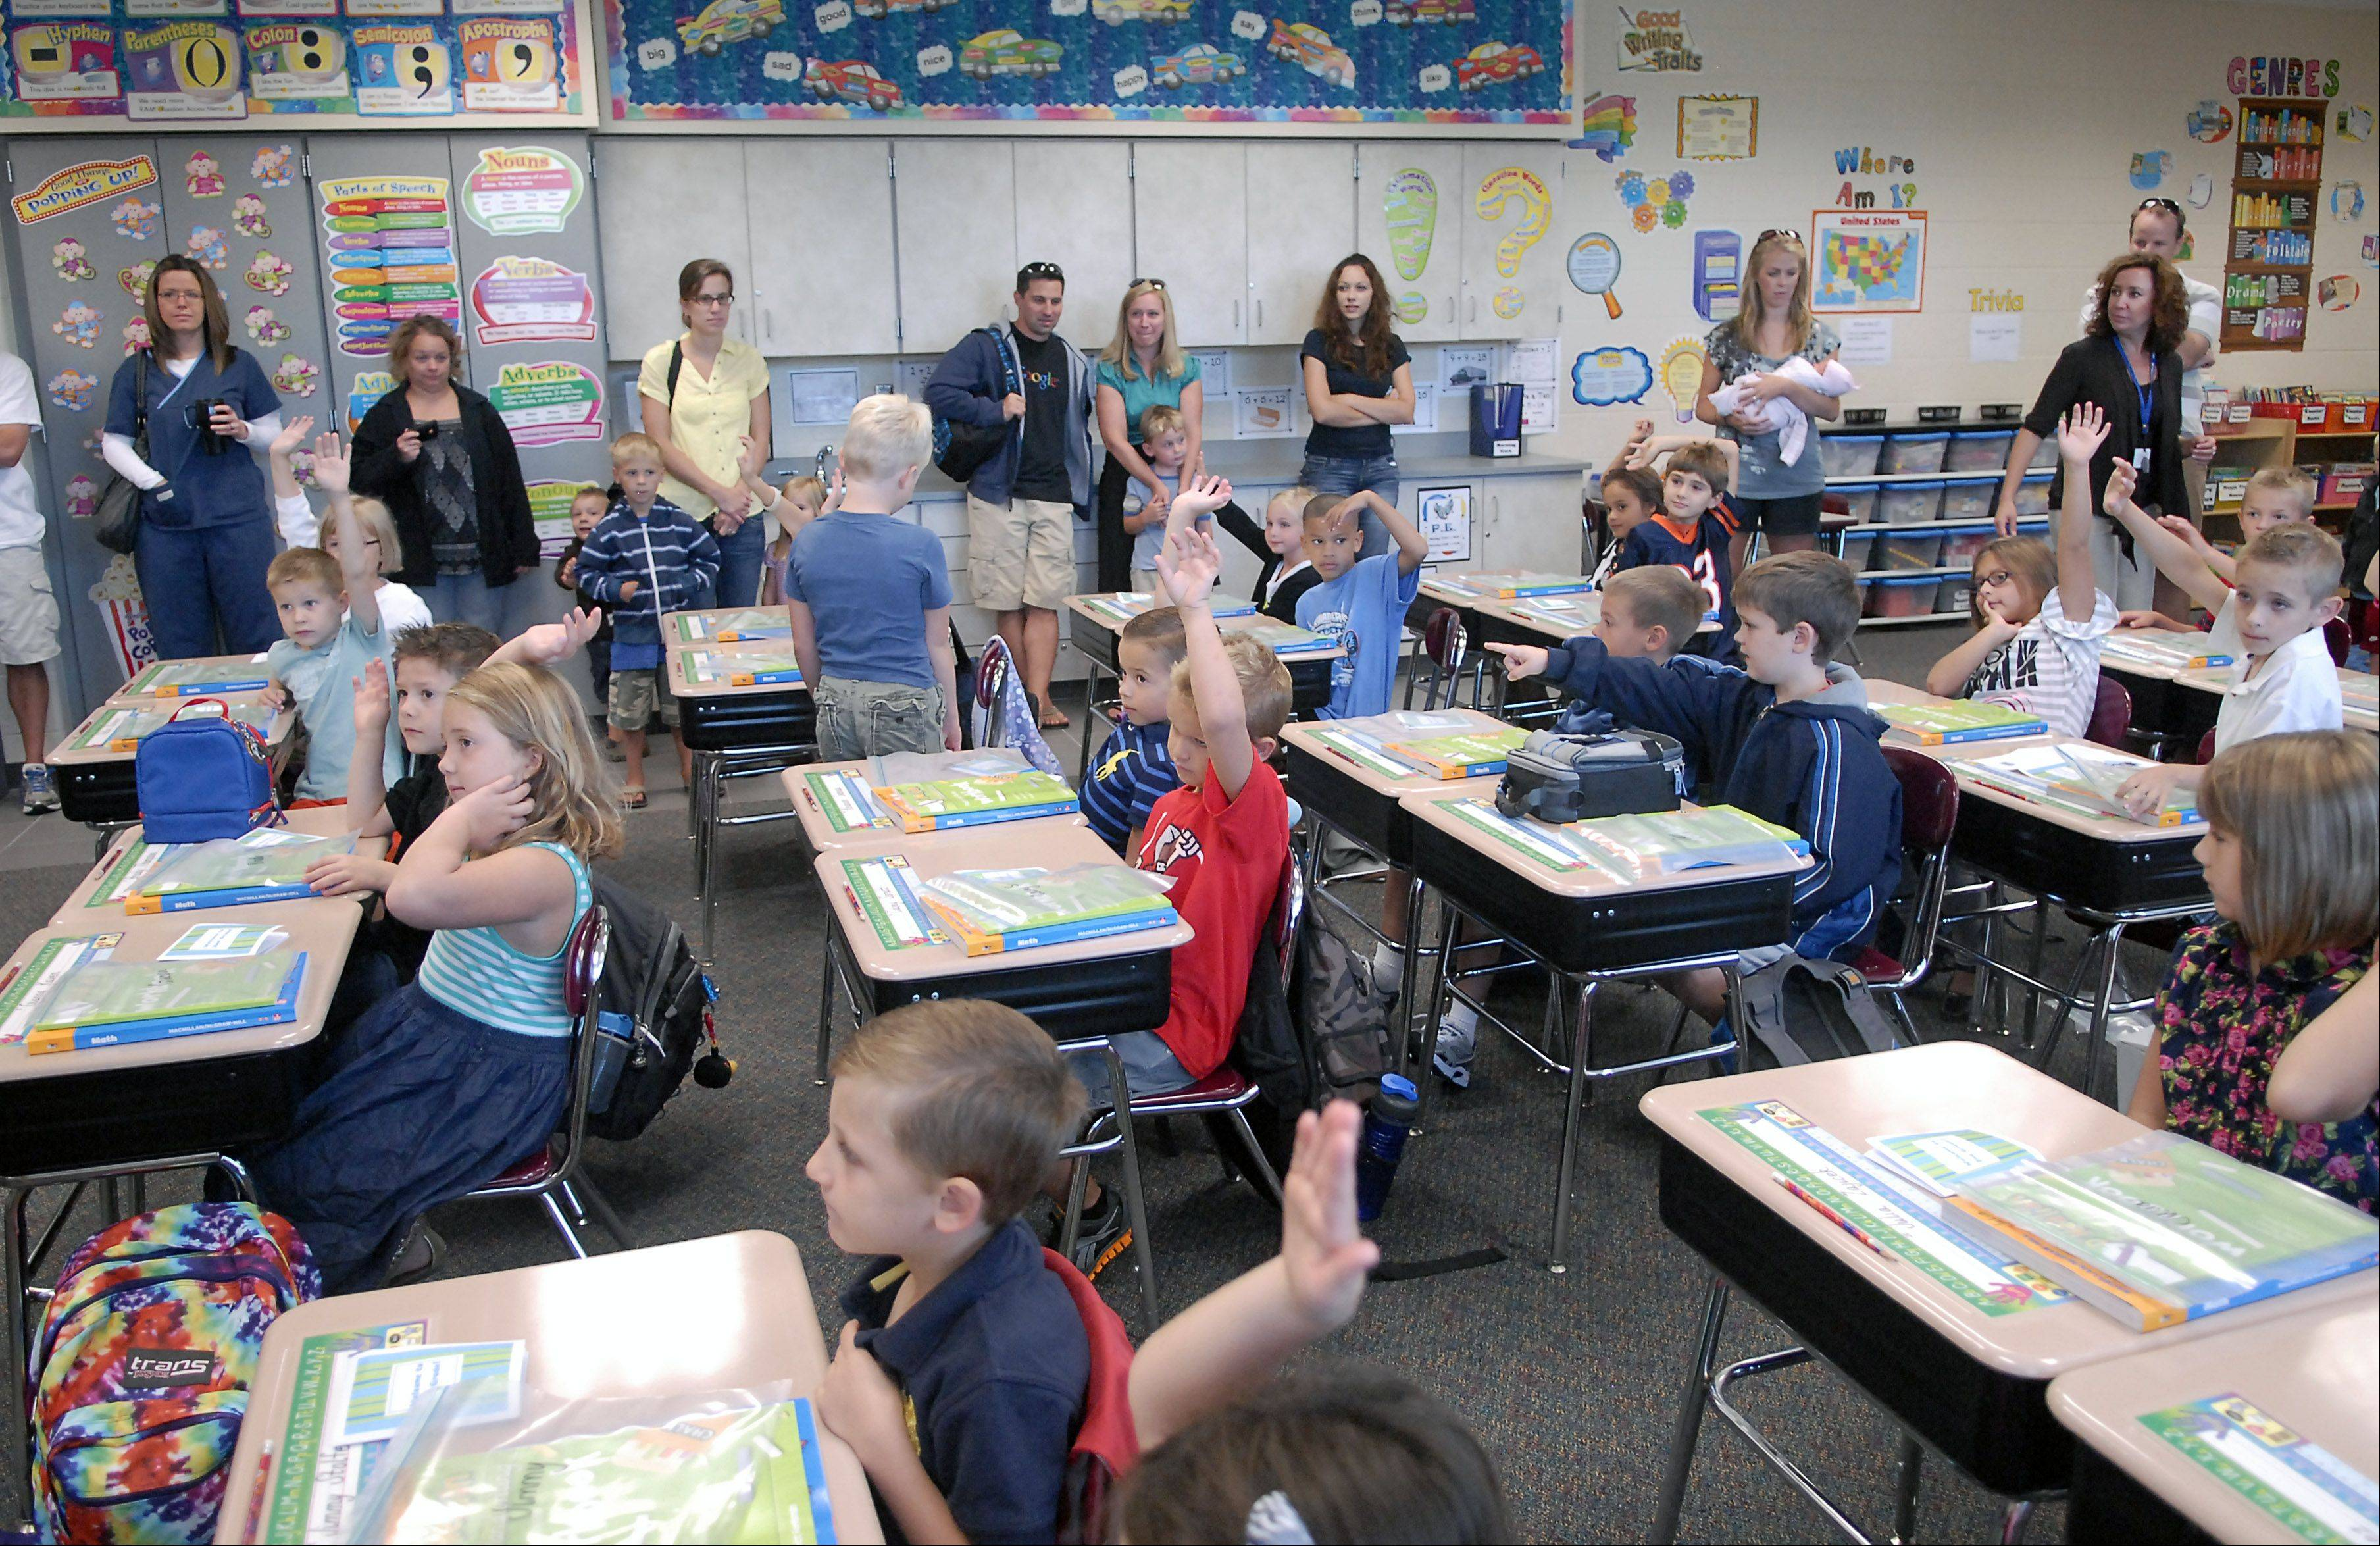 Parents are allowed to observe the first ten minutes of class in Tina Huffman's second-grade class on the first day of school at Williamsburg Elementary School.